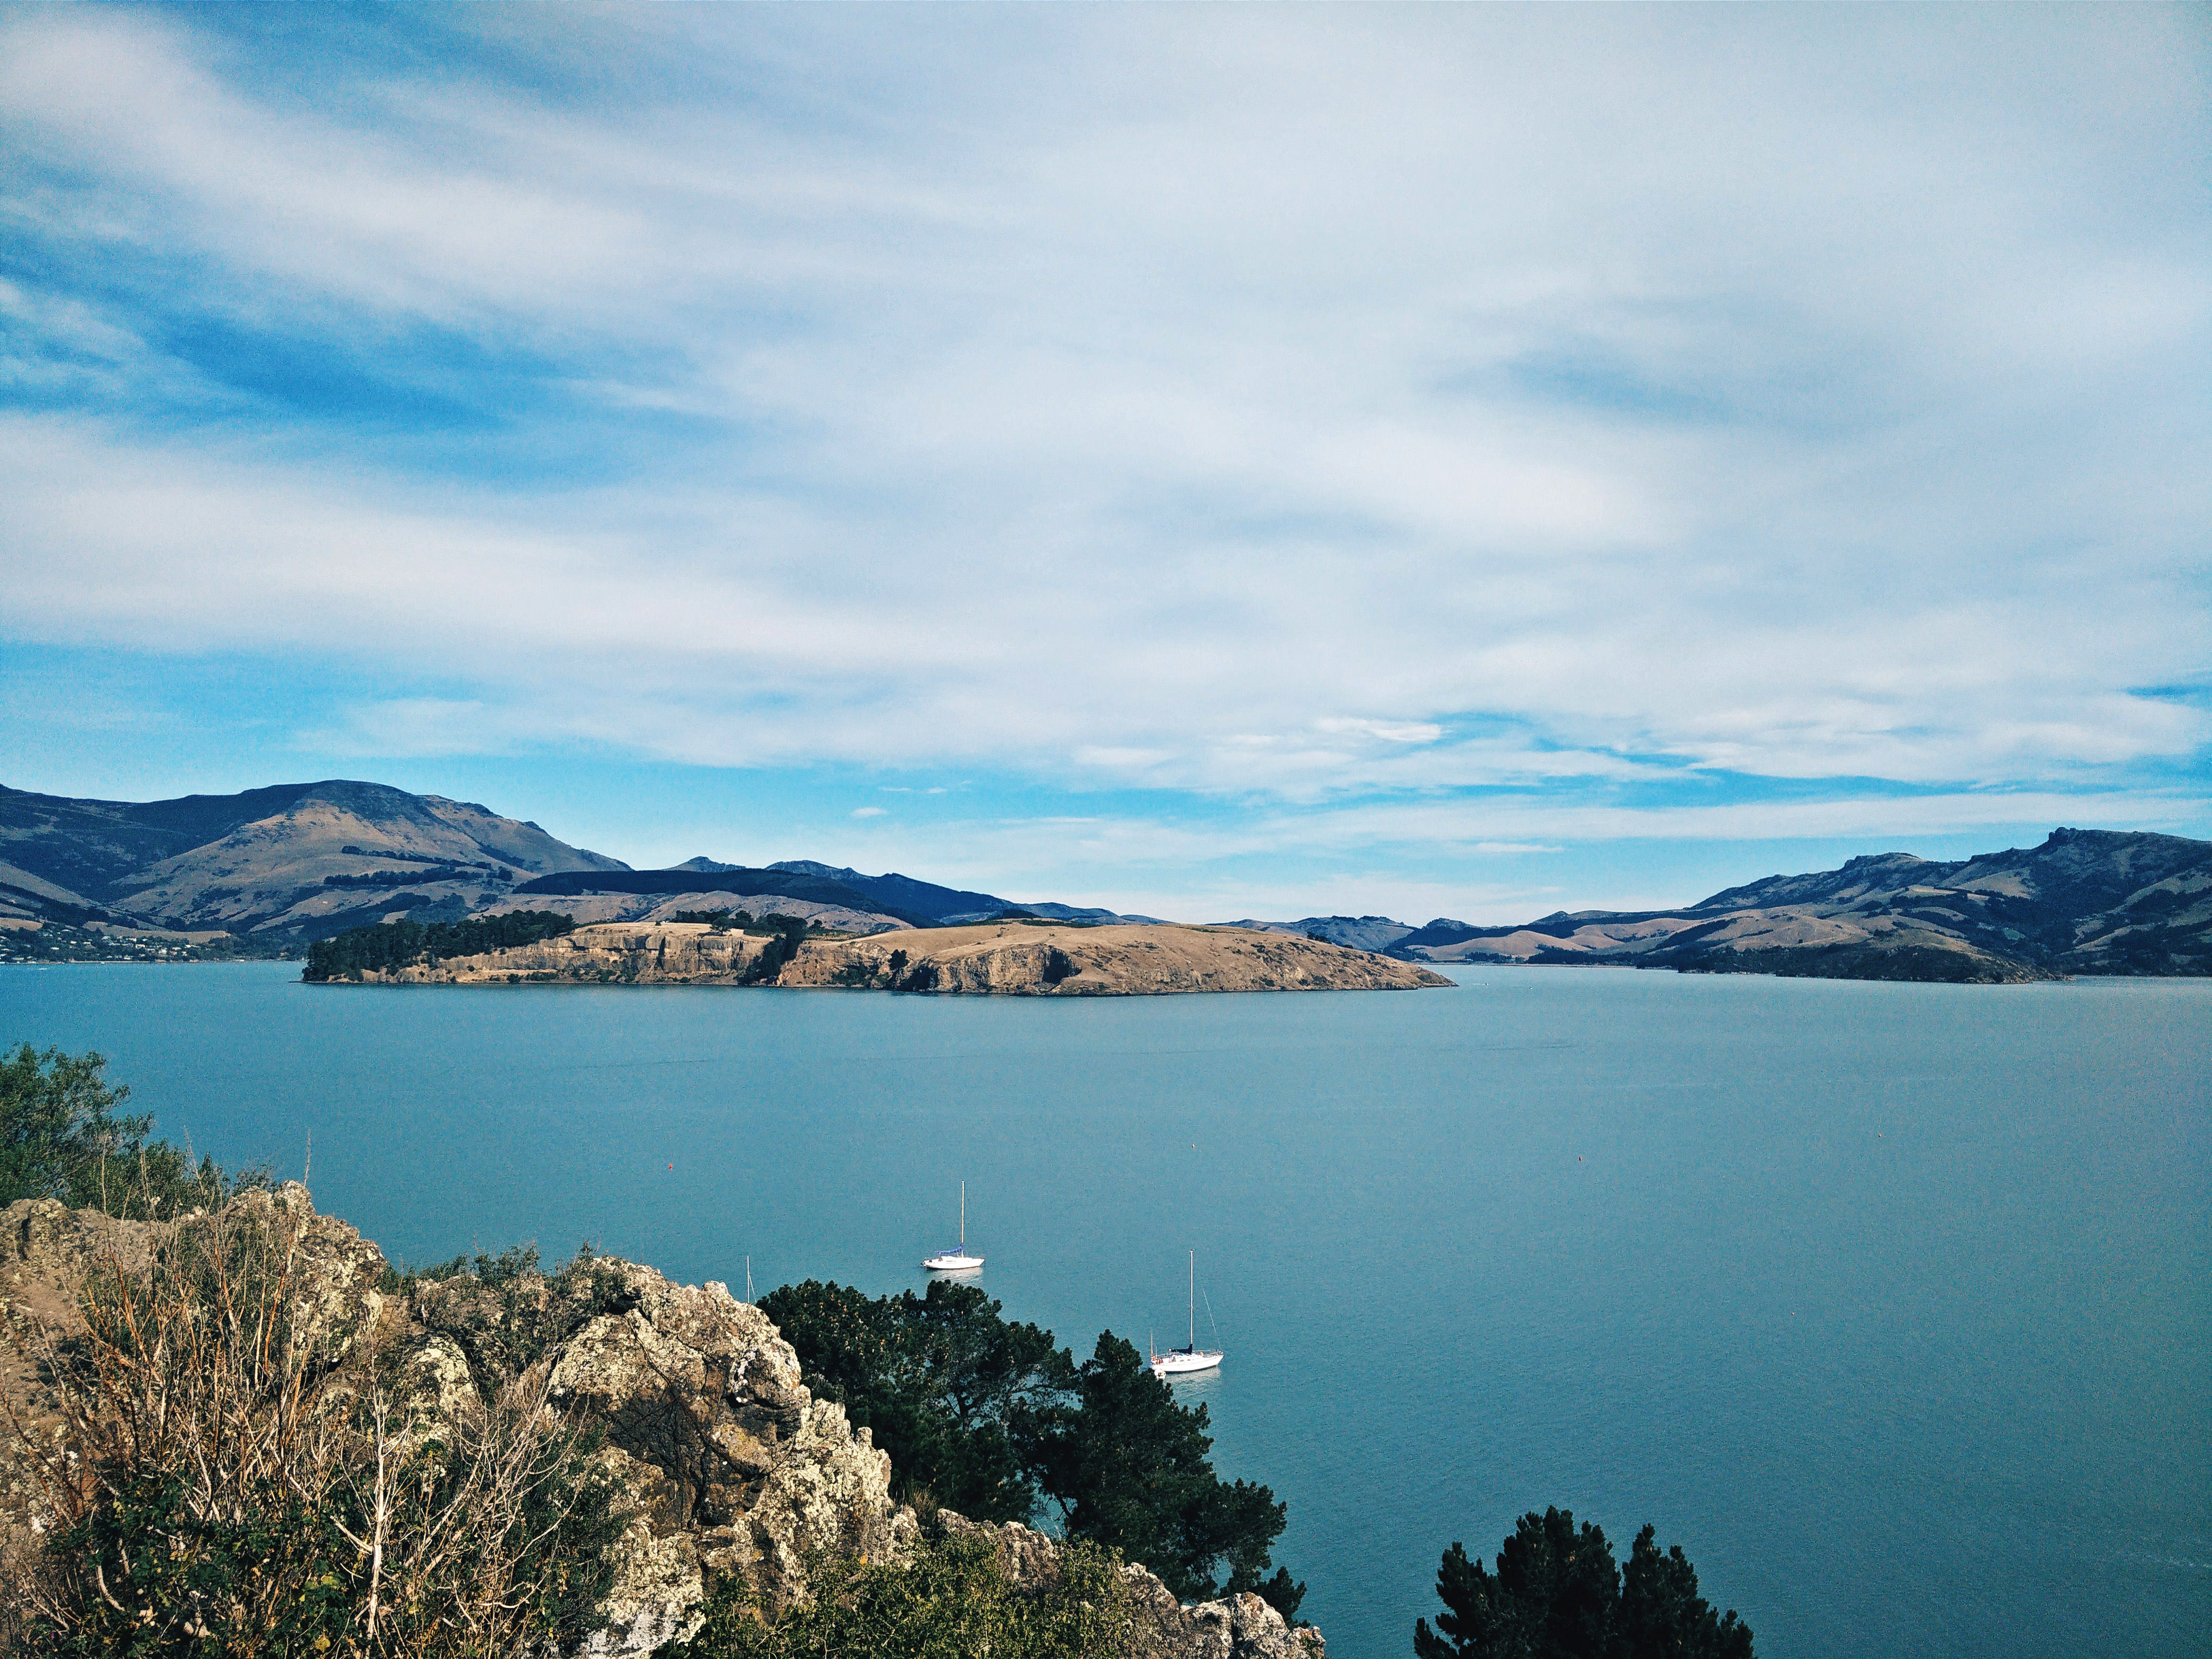 Landscape and water around christchurch new zealand image for Landscaping chch